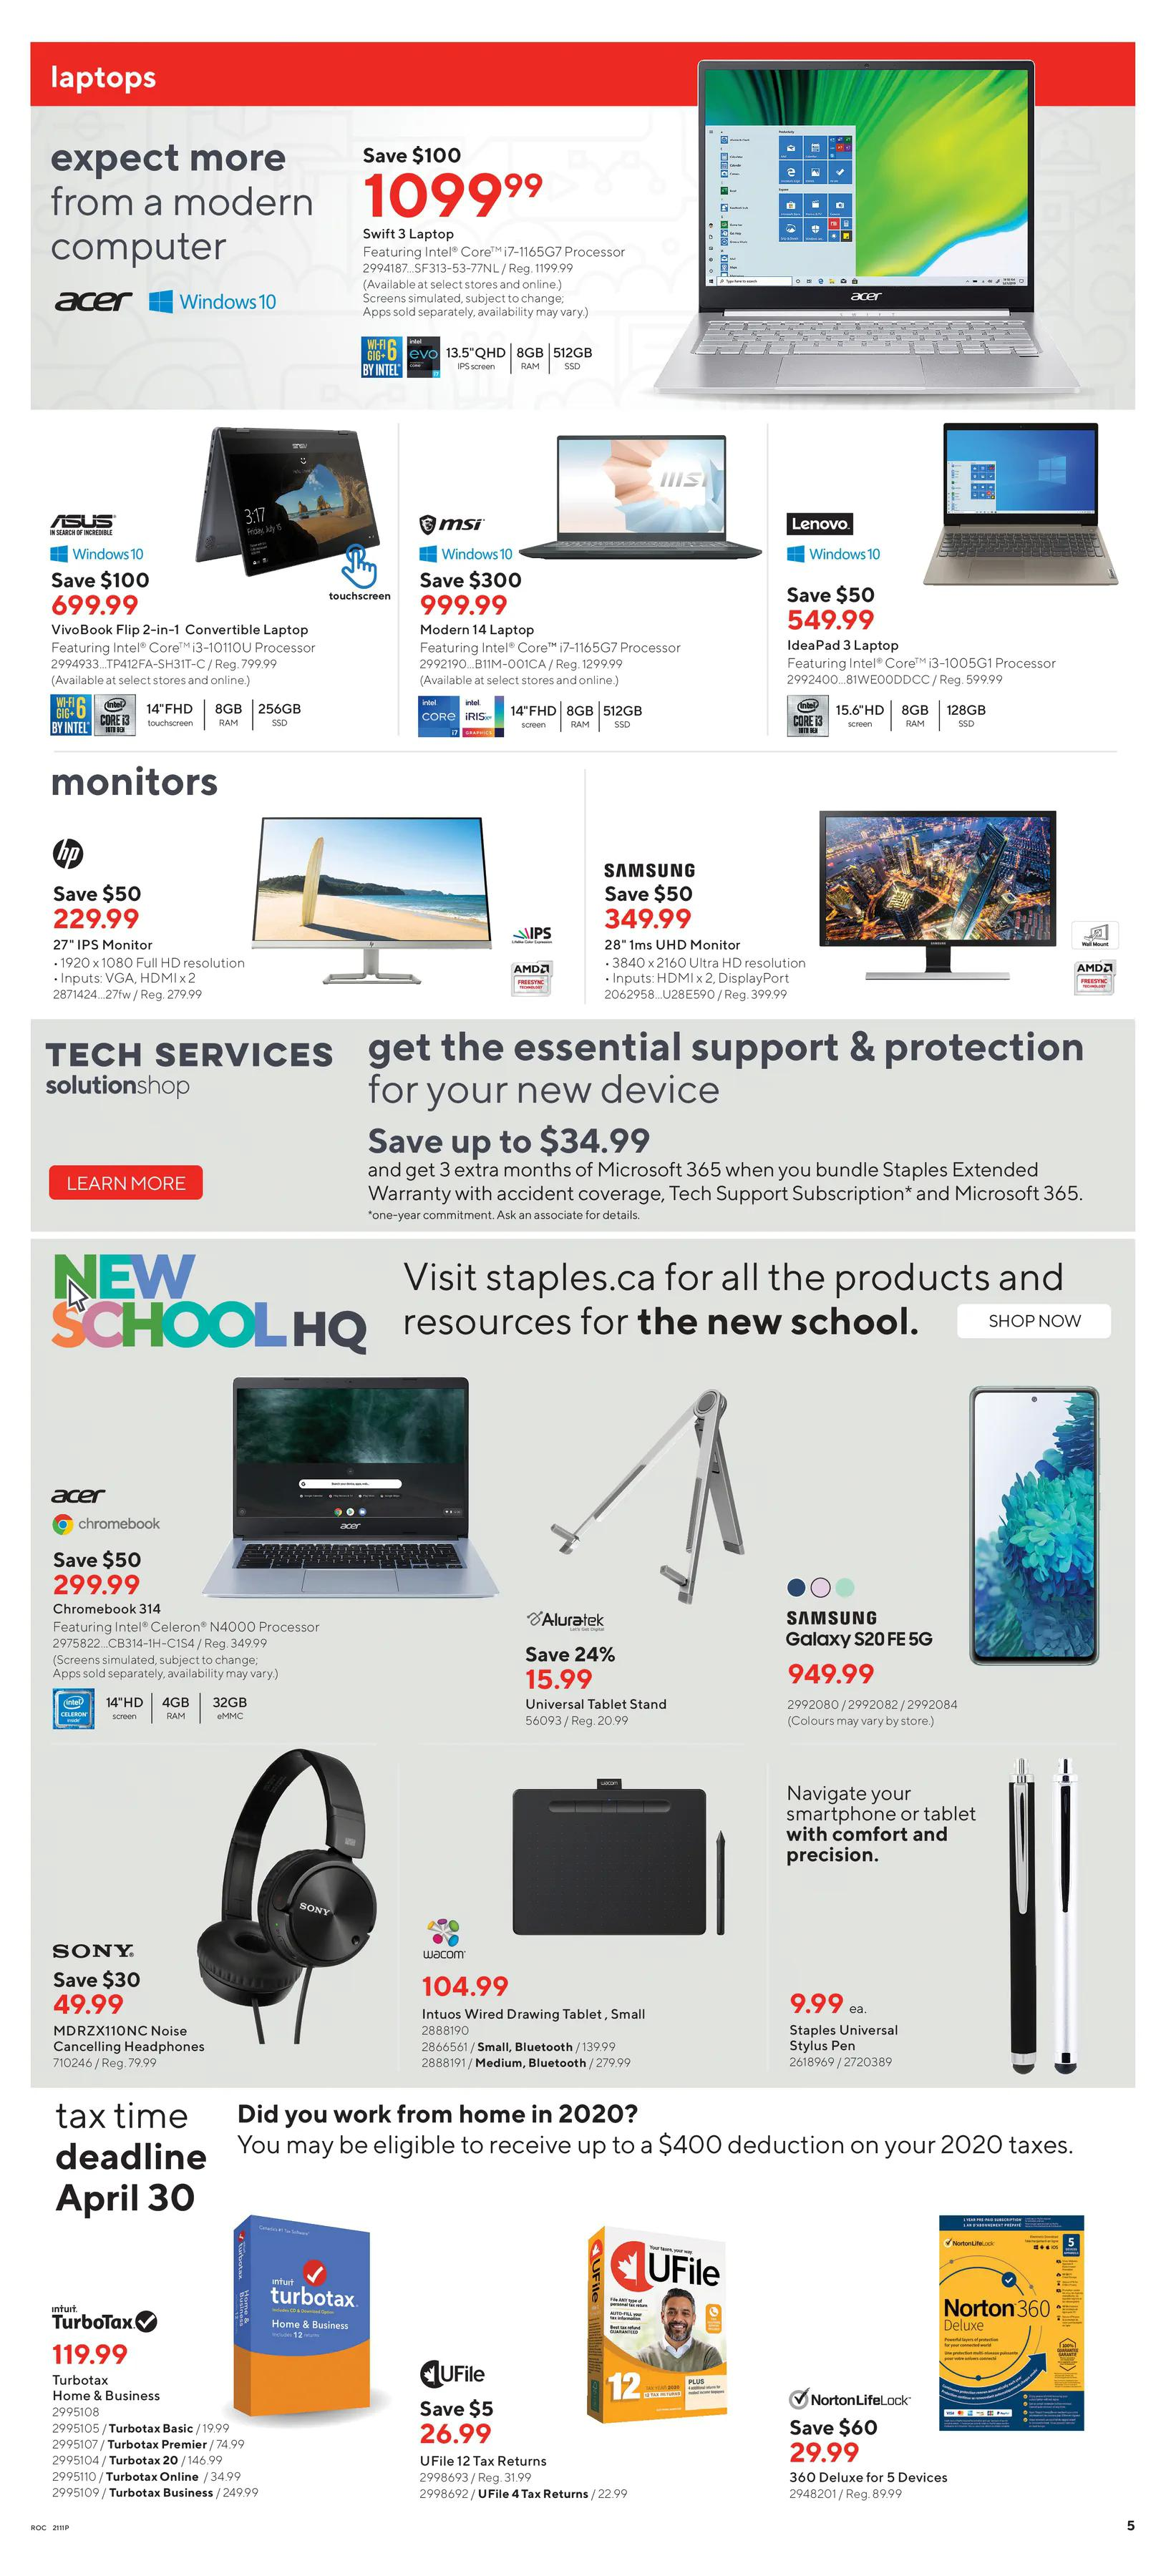 Staples - Weekly Flyer Specials - Page 6